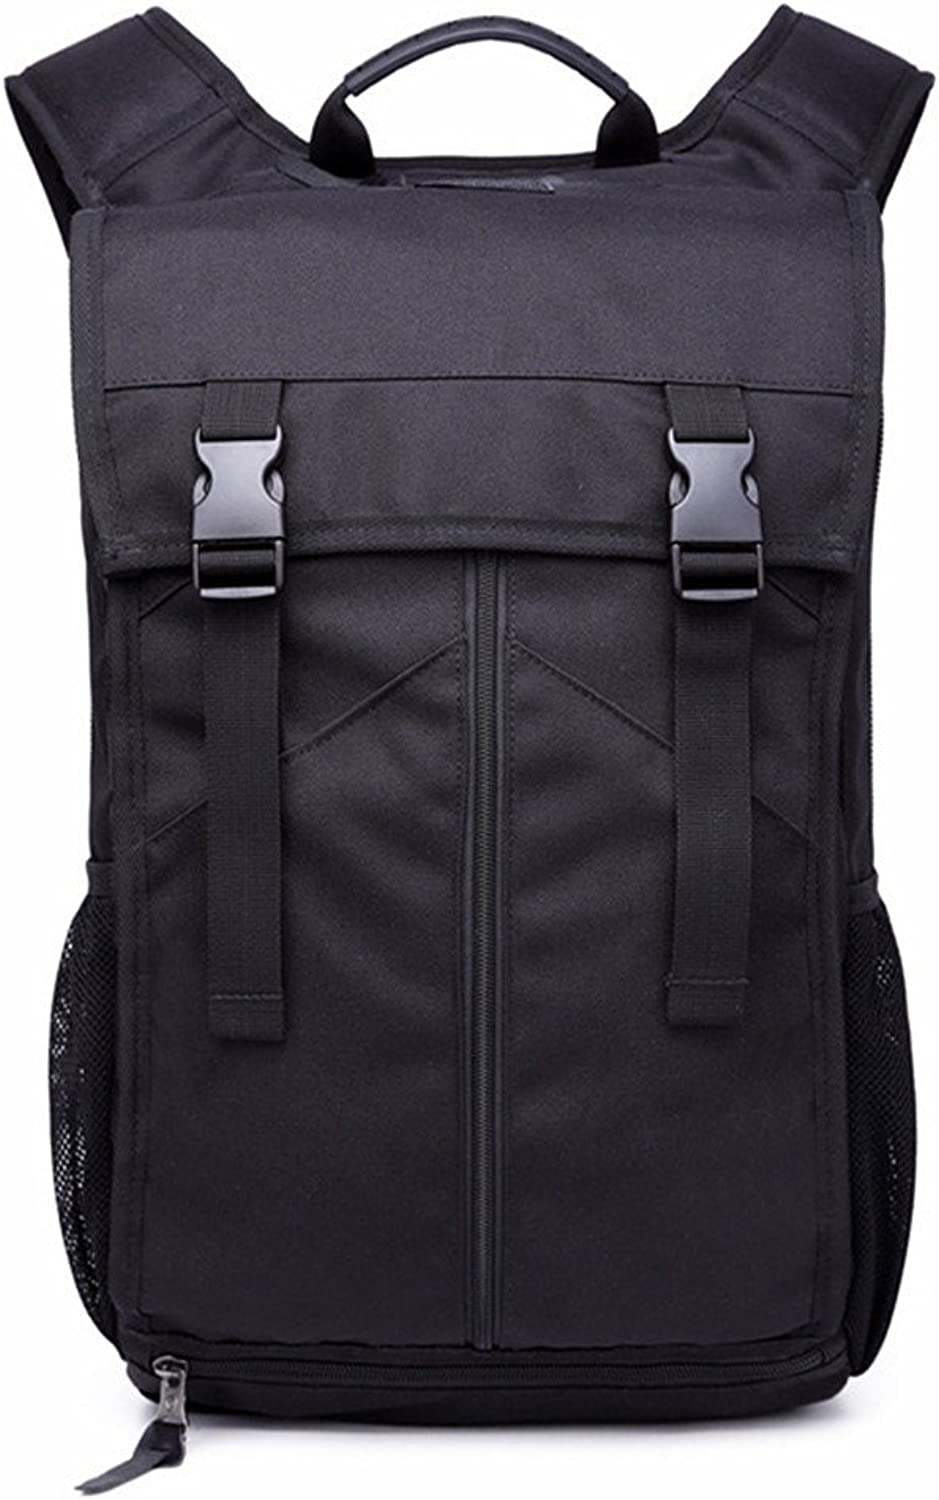 Travel Laptop Backpack Backpacks Oxford Cloth Shoulders Multifunction Travel by Walking Climbing Wild Camping Leisure Sport Creativity Neutral Suitable for Outdoor Use Gear ScanSmart Bag